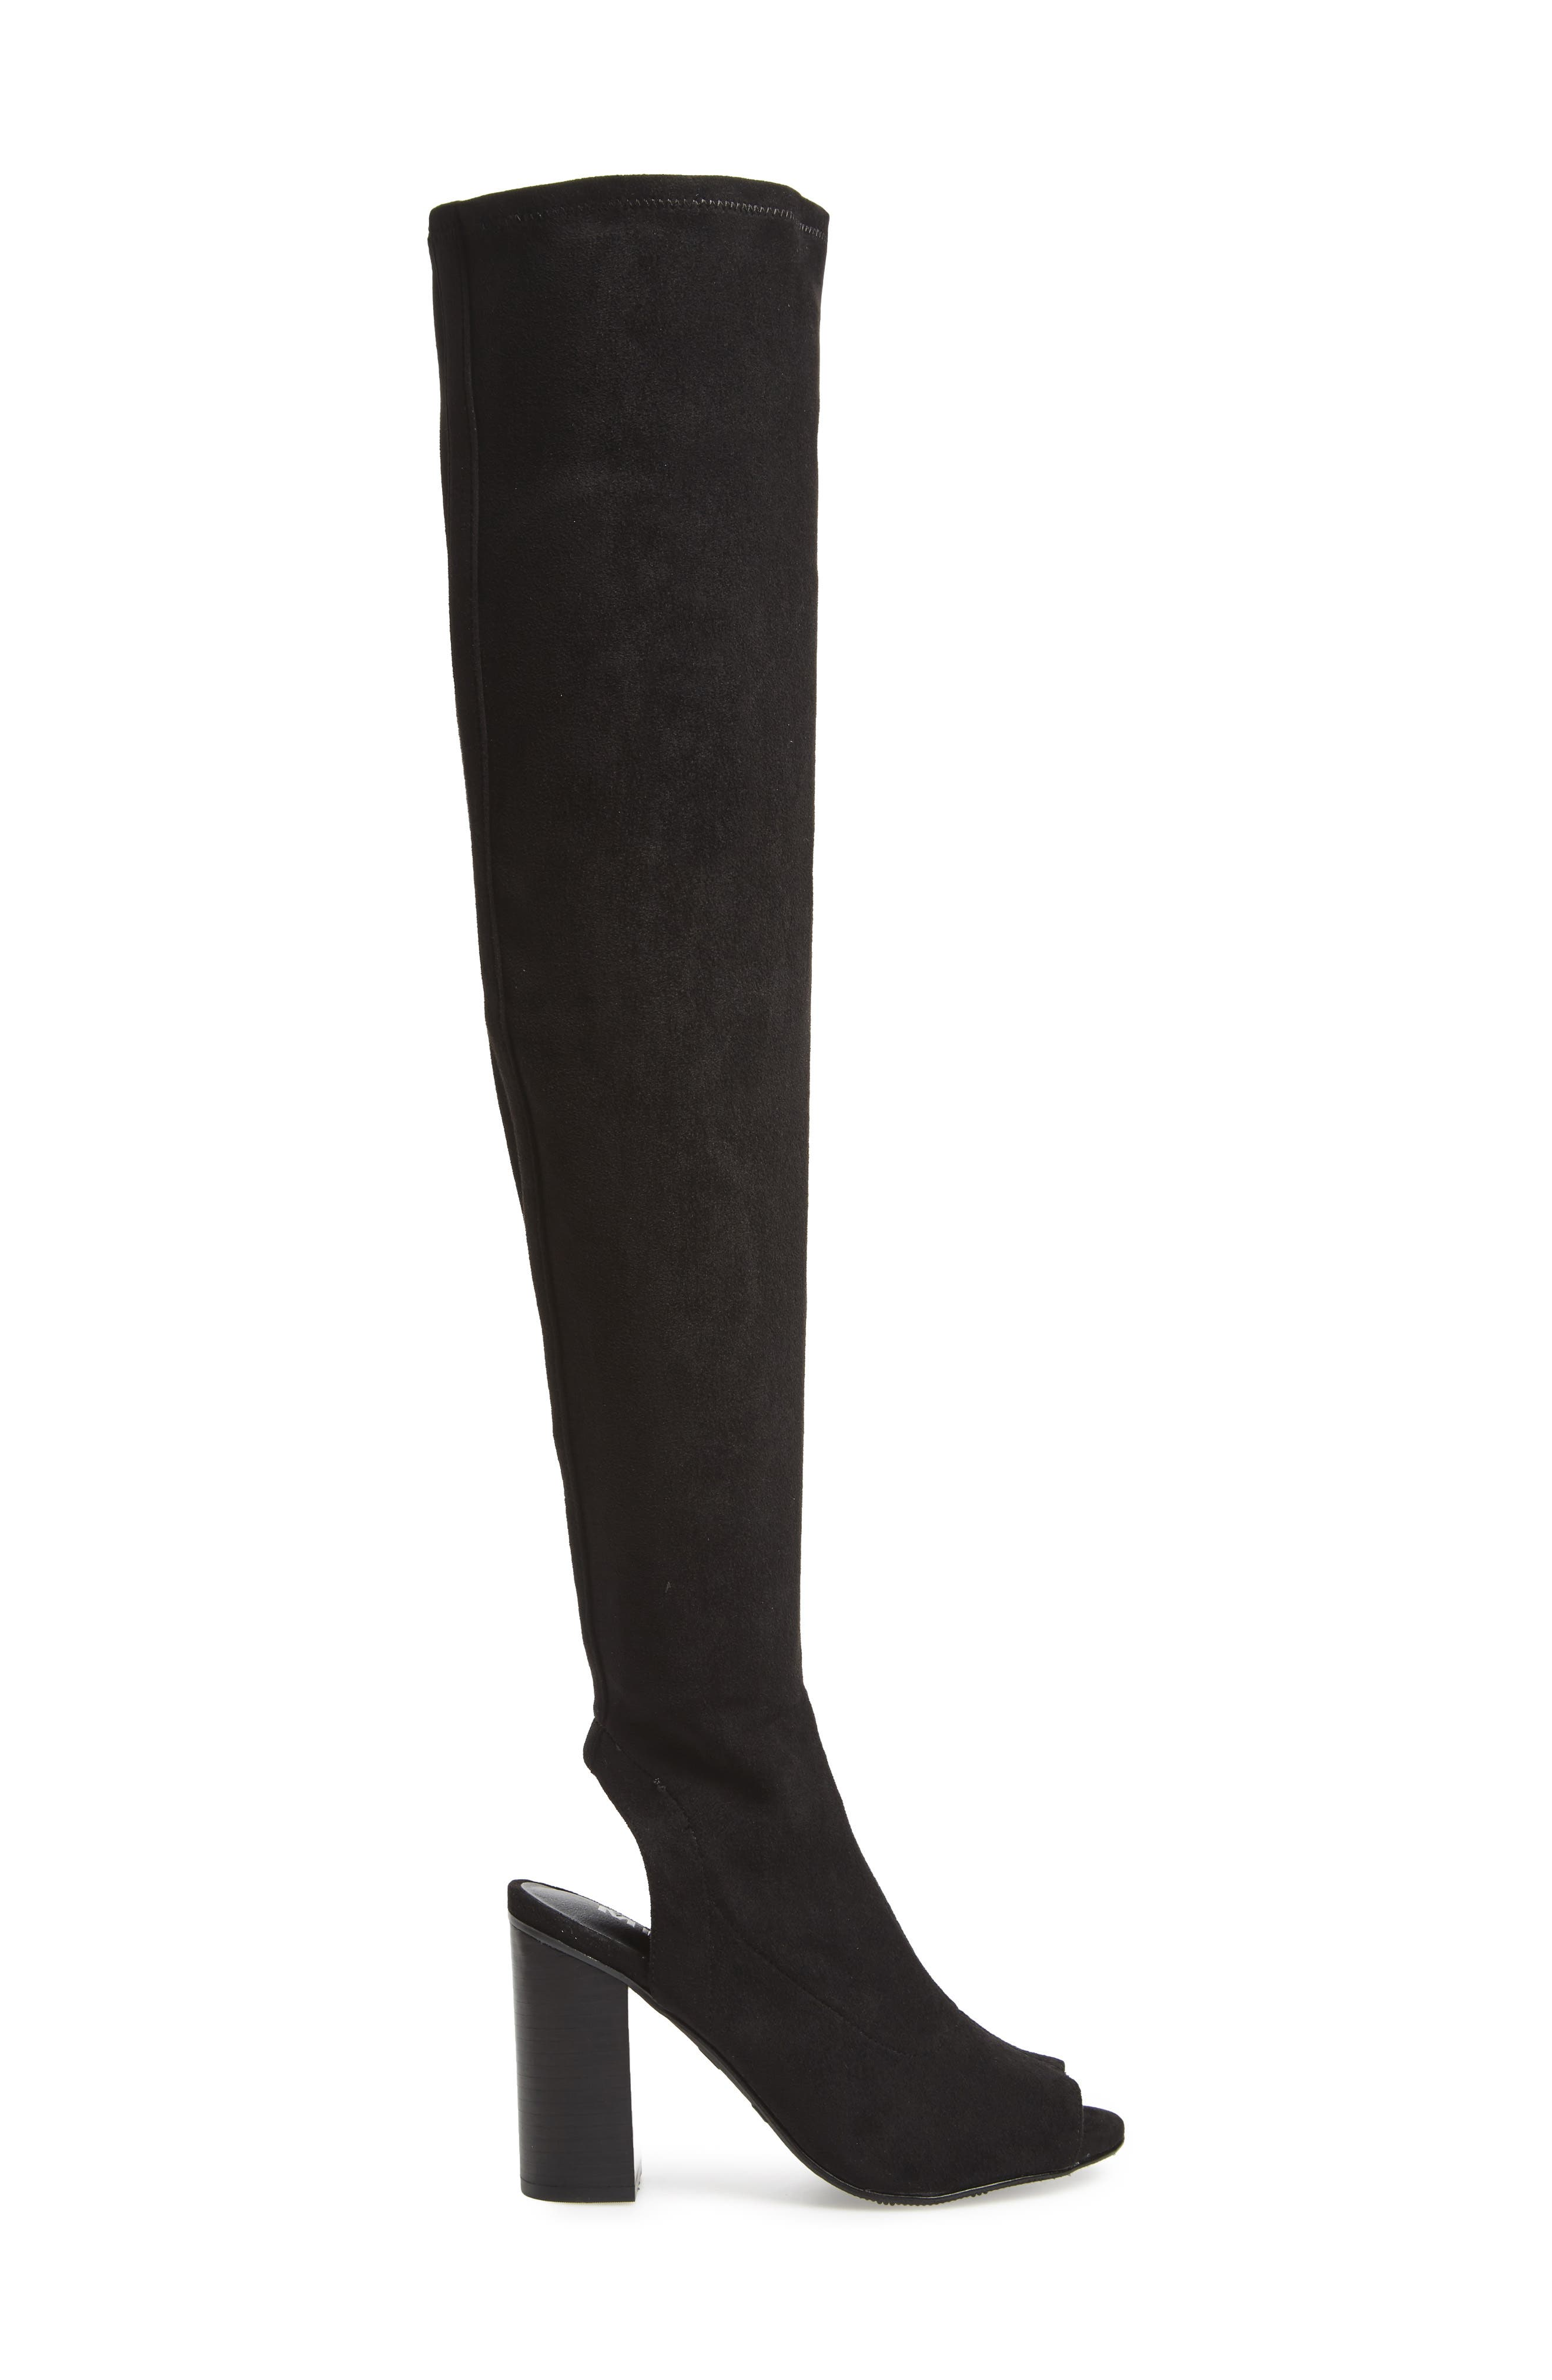 Robyn Cutout Over the Knee Boot,                             Alternate thumbnail 3, color,                             001